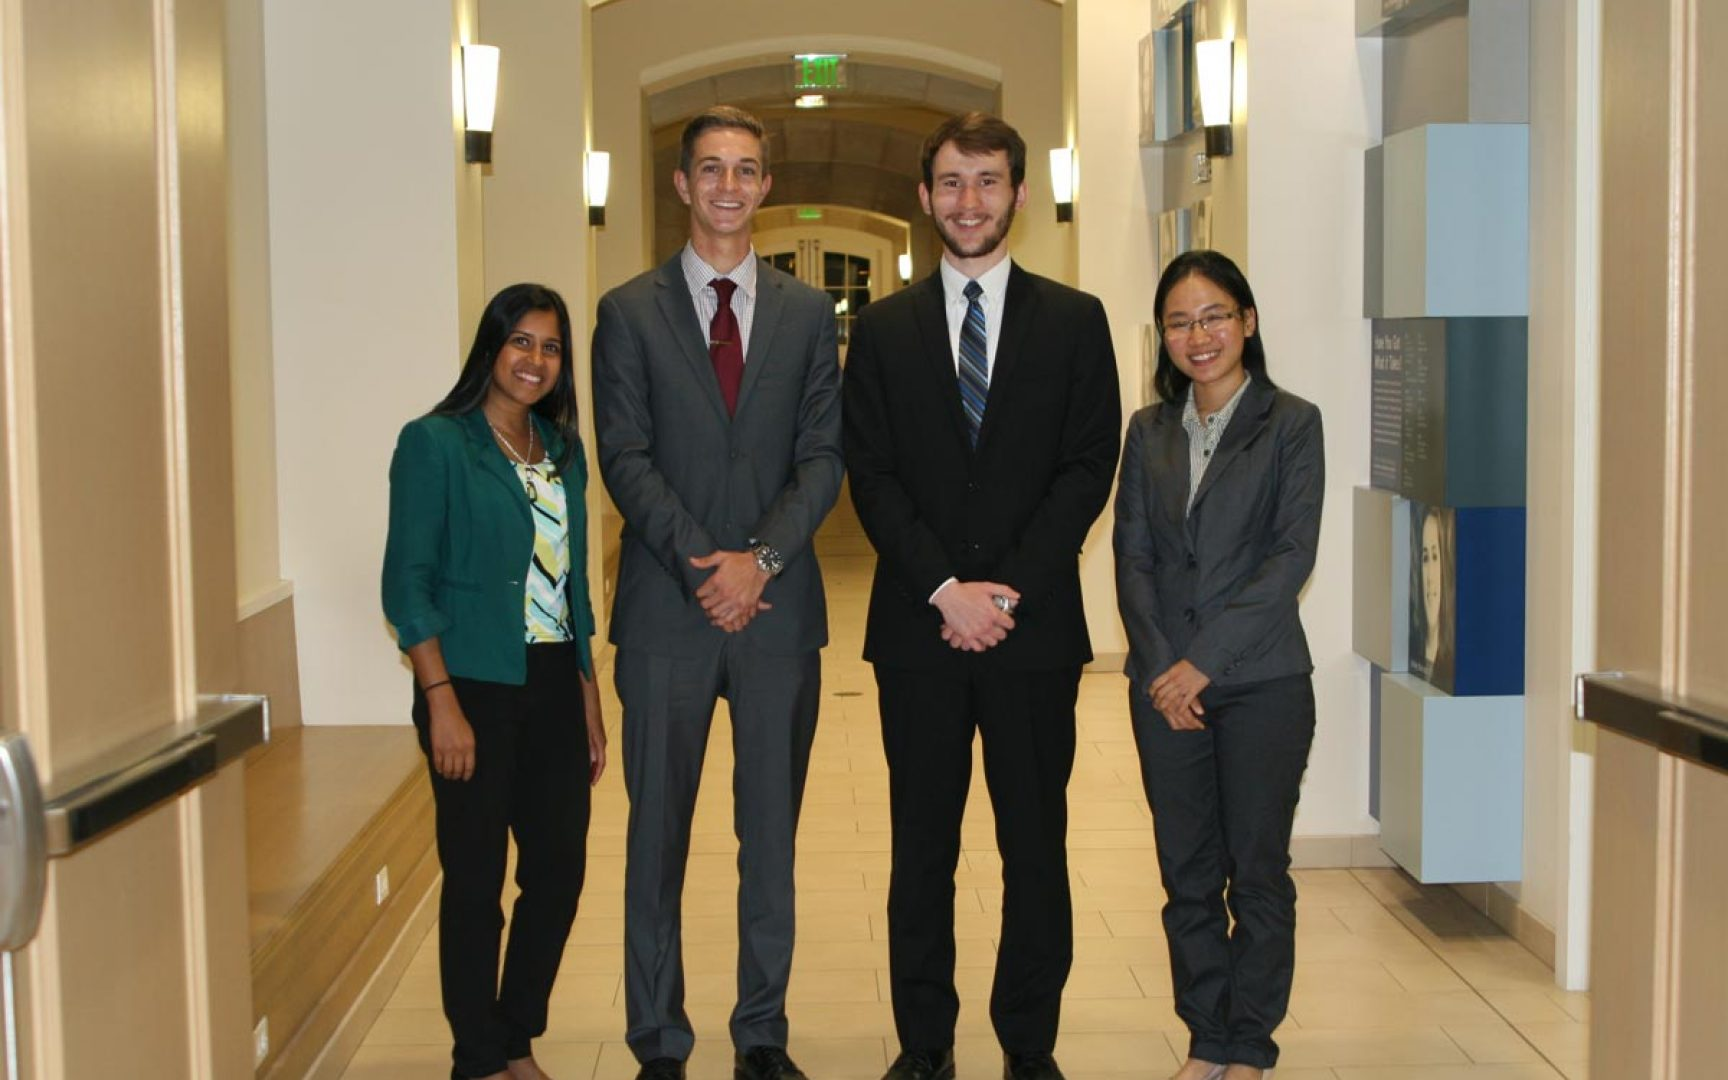 First-year students flourish in ethics case competition